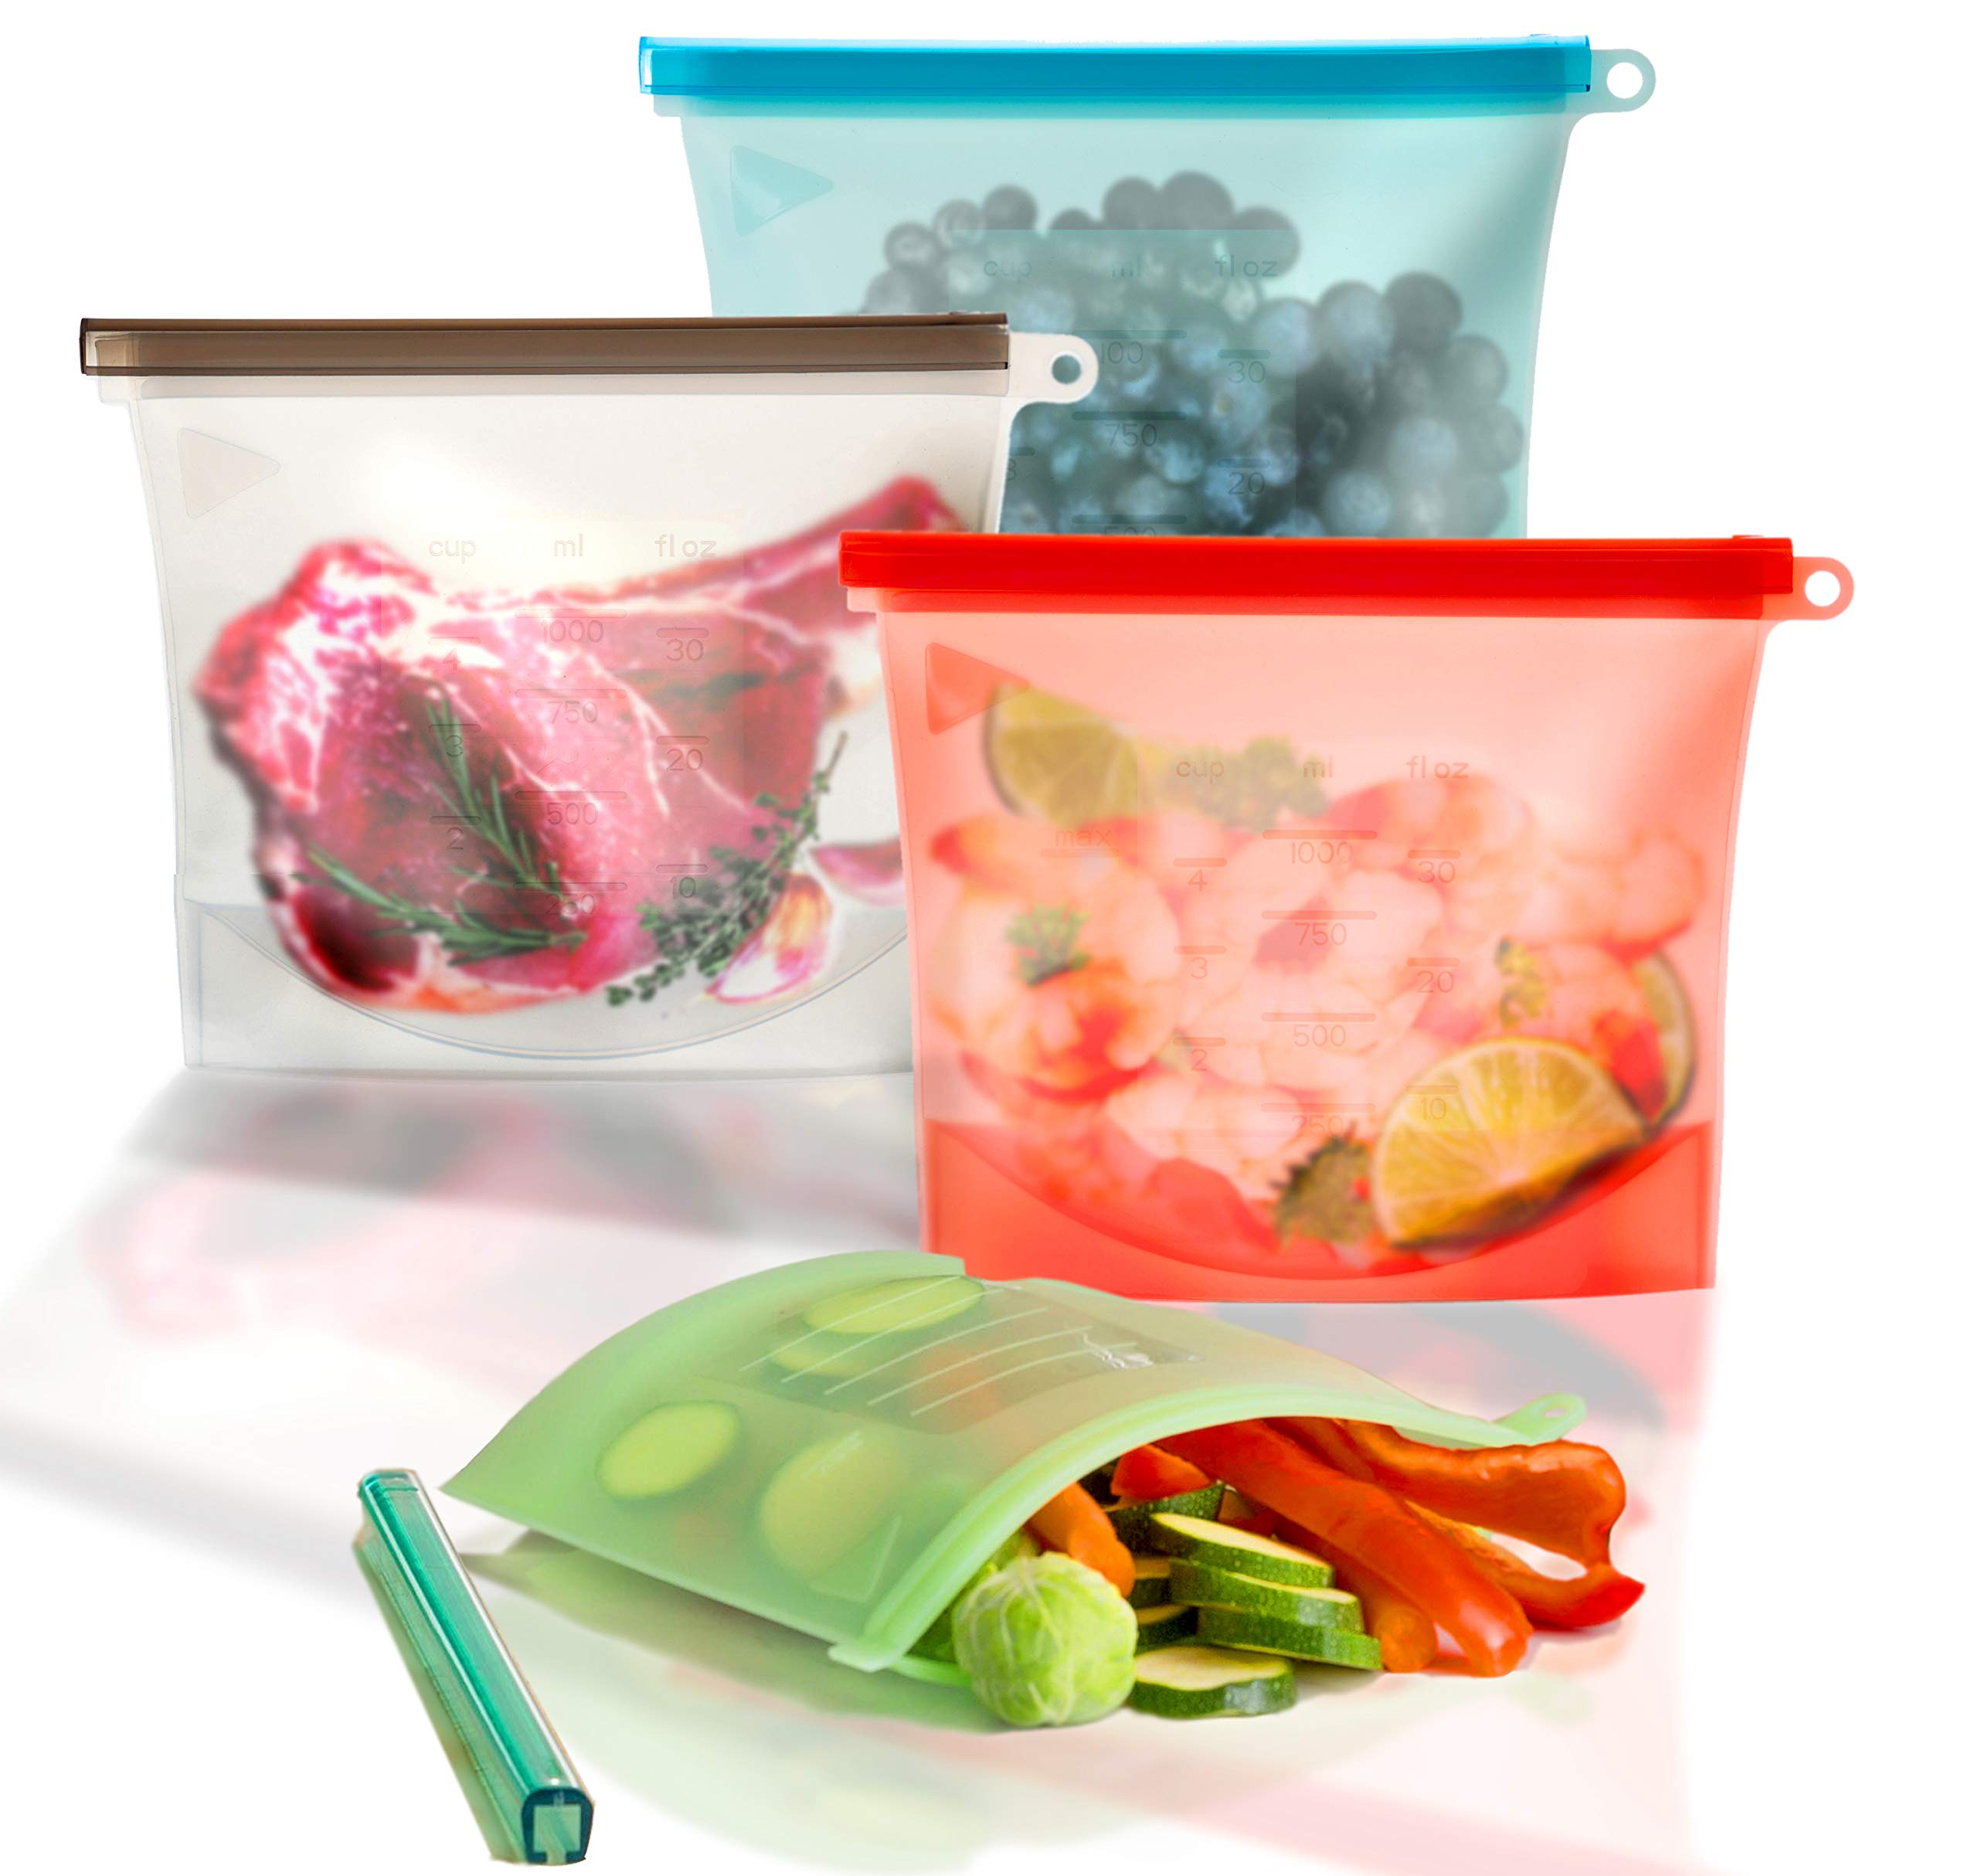 Silicone Food Bags, Reusable Sandwhich Bags & Freezer Bags - Set of 4 – Double Thick Silicone Bags – Economical & Eco Friendly – Microwave & Dishwasher Safe